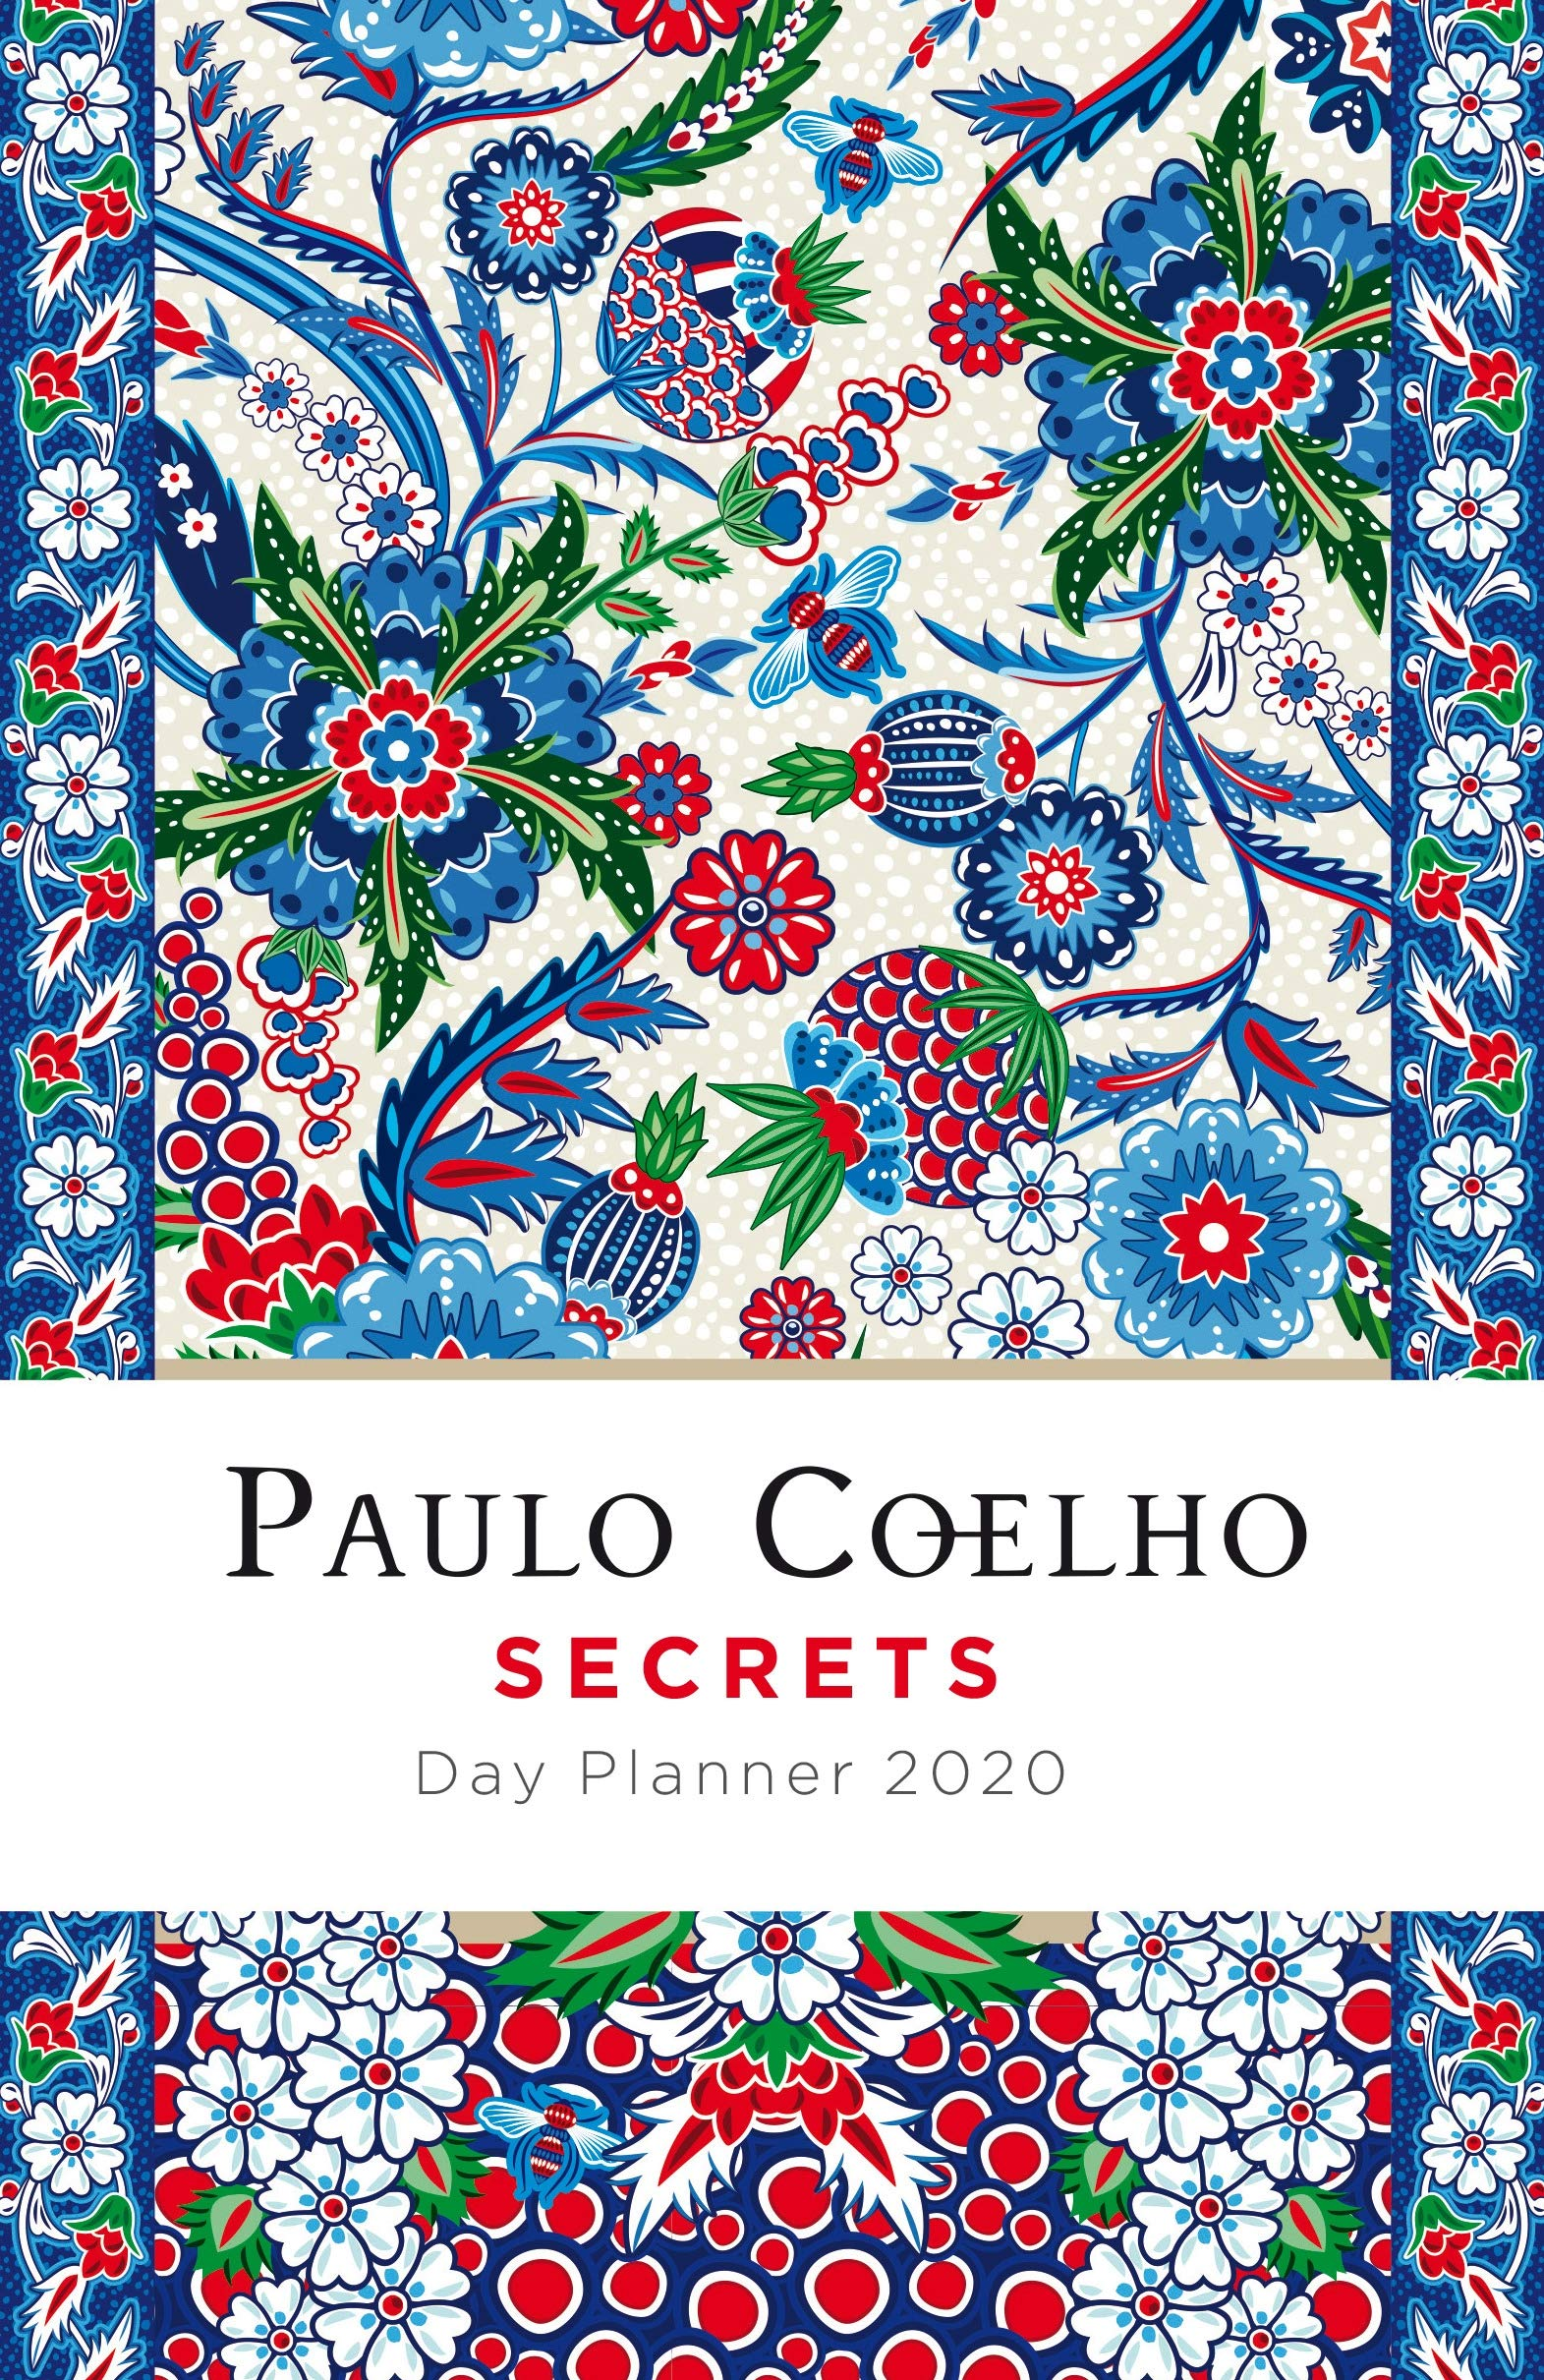 Secrets: Day Planner 2020: Amazon.es: Paulo Coelho: Libros ...